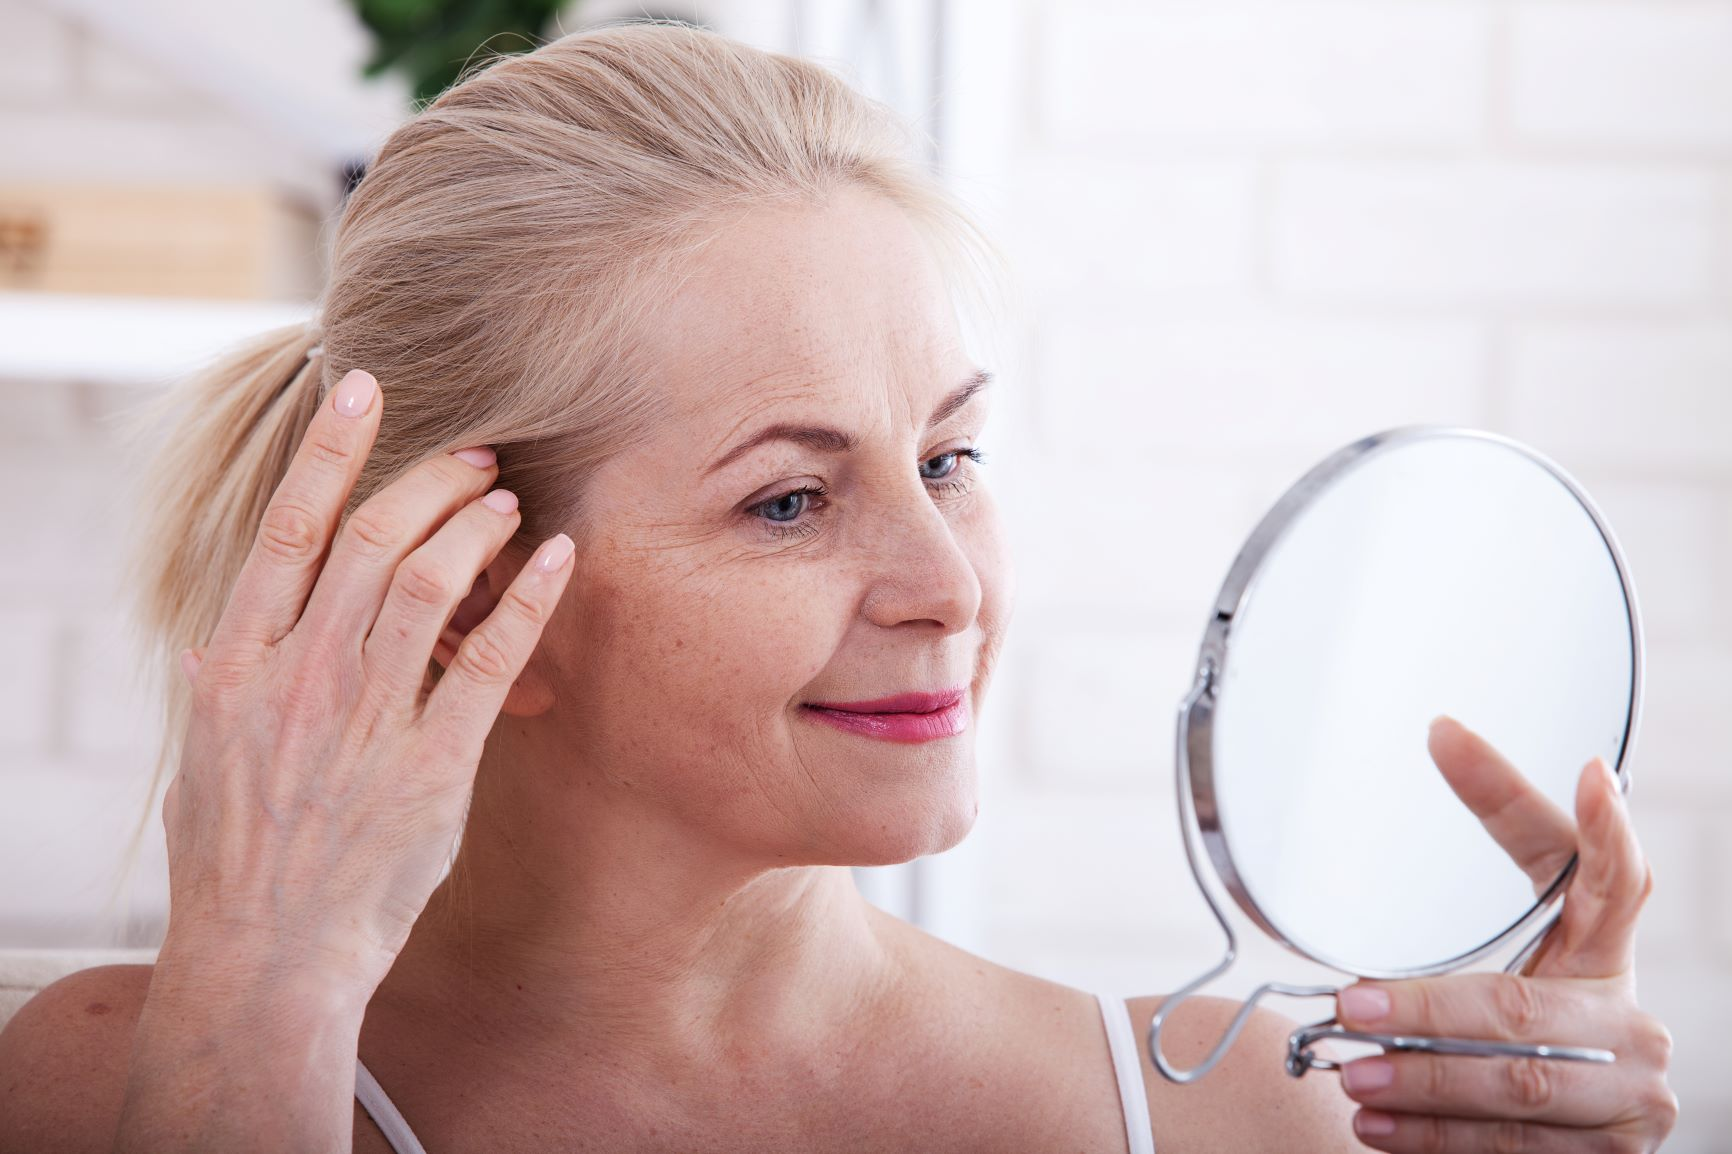 Seven ways to keep your hands looking youthful, according to experts